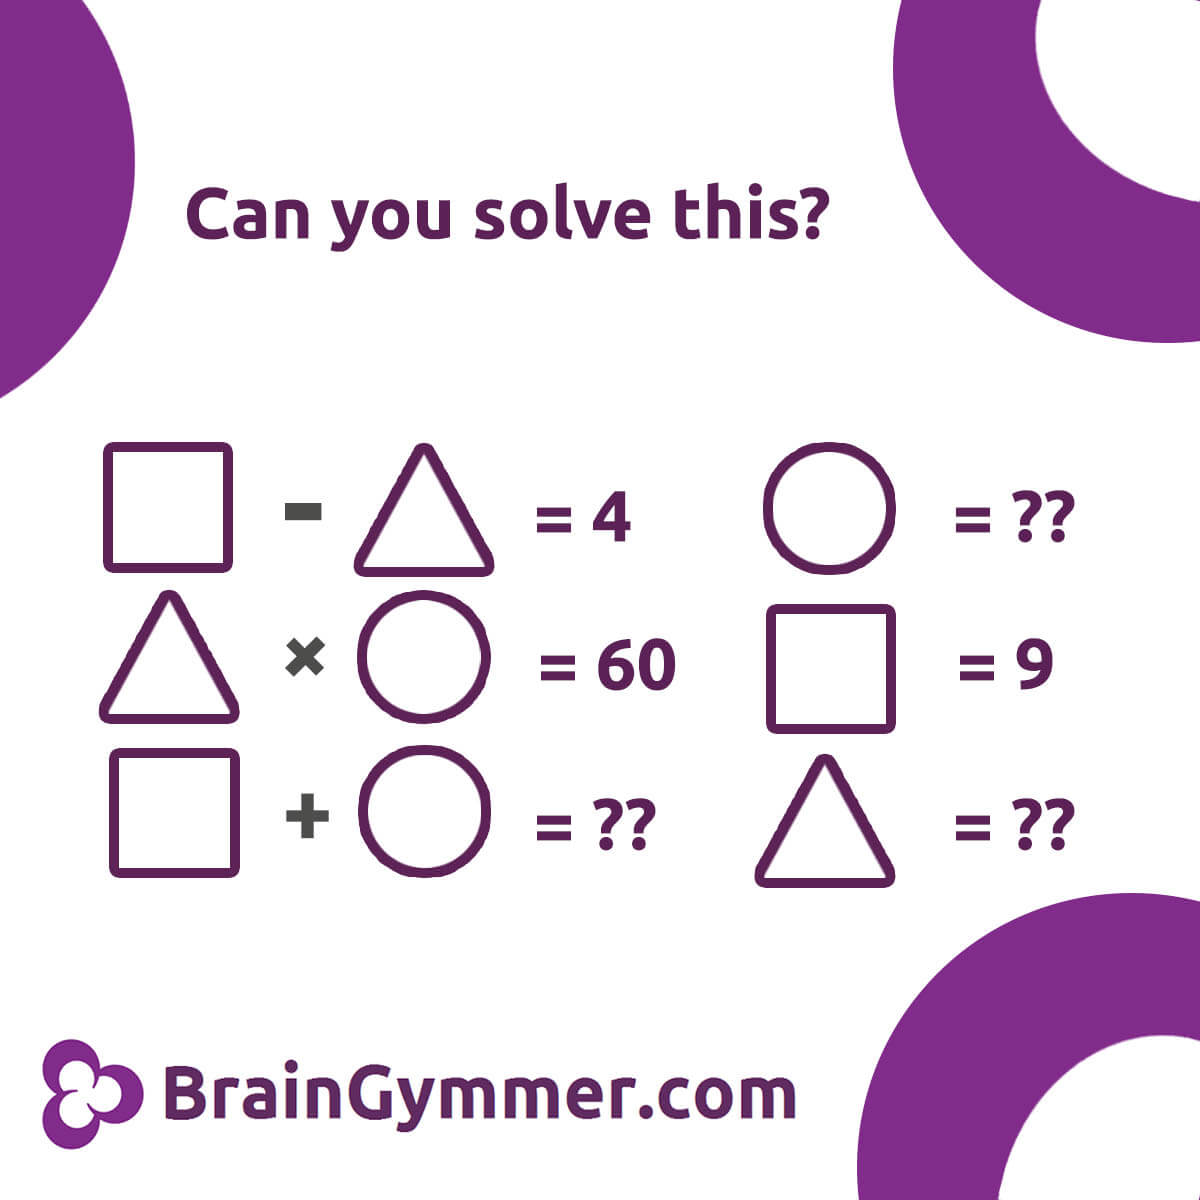 Solutions-of-our-puzzles-on-facebook